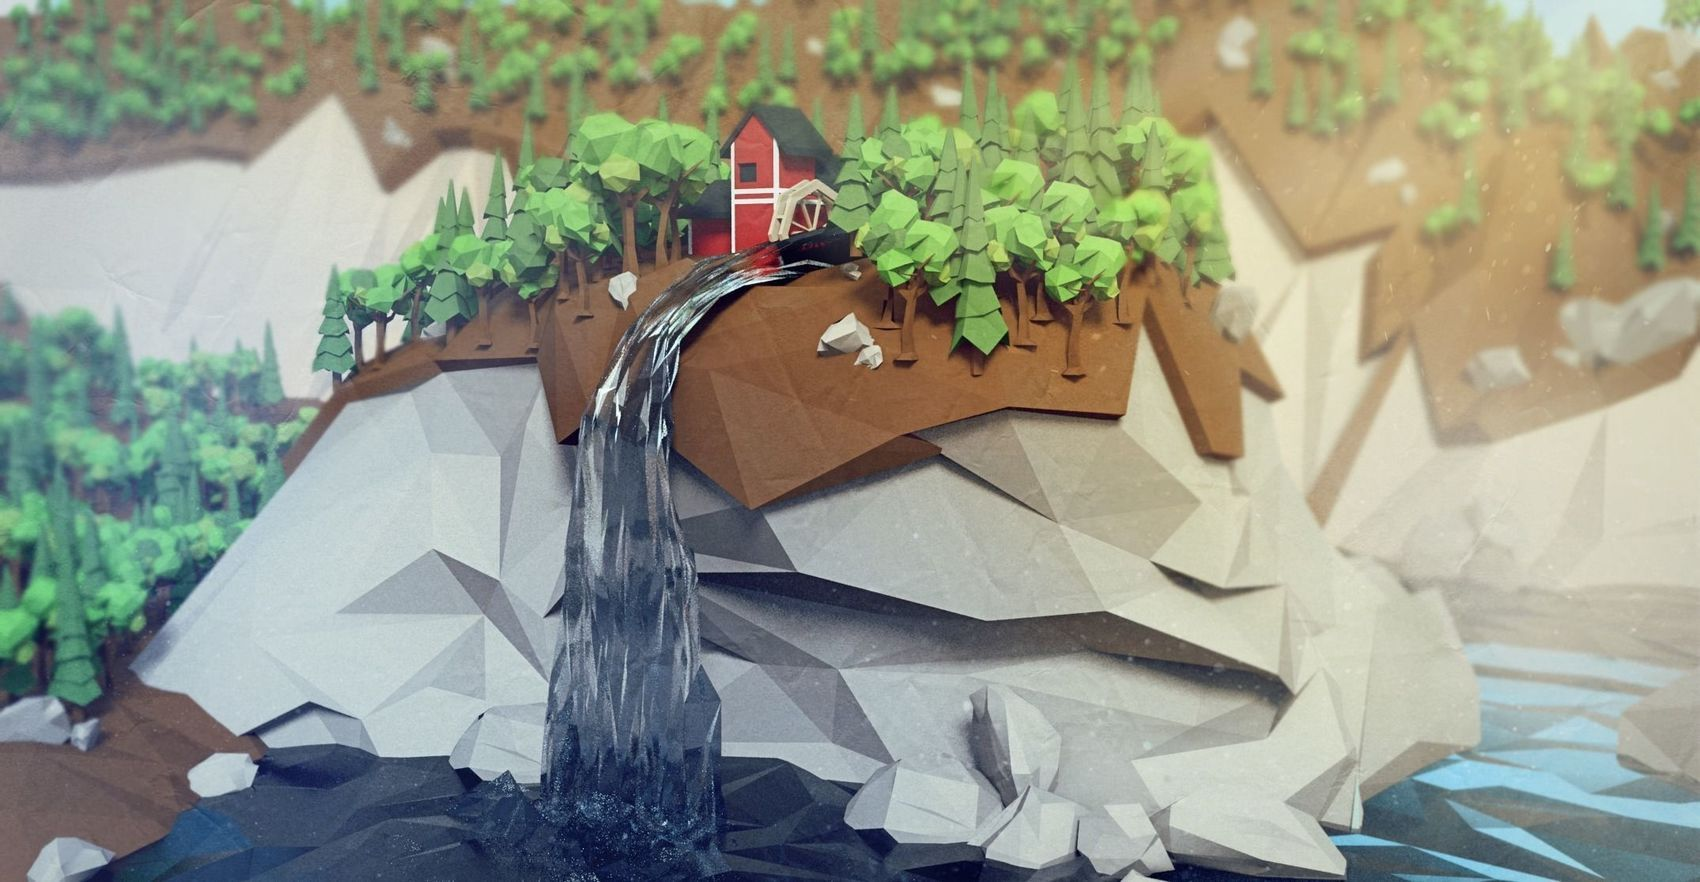 Barn and Waterfall by Jeremy Parker Yang / illustration